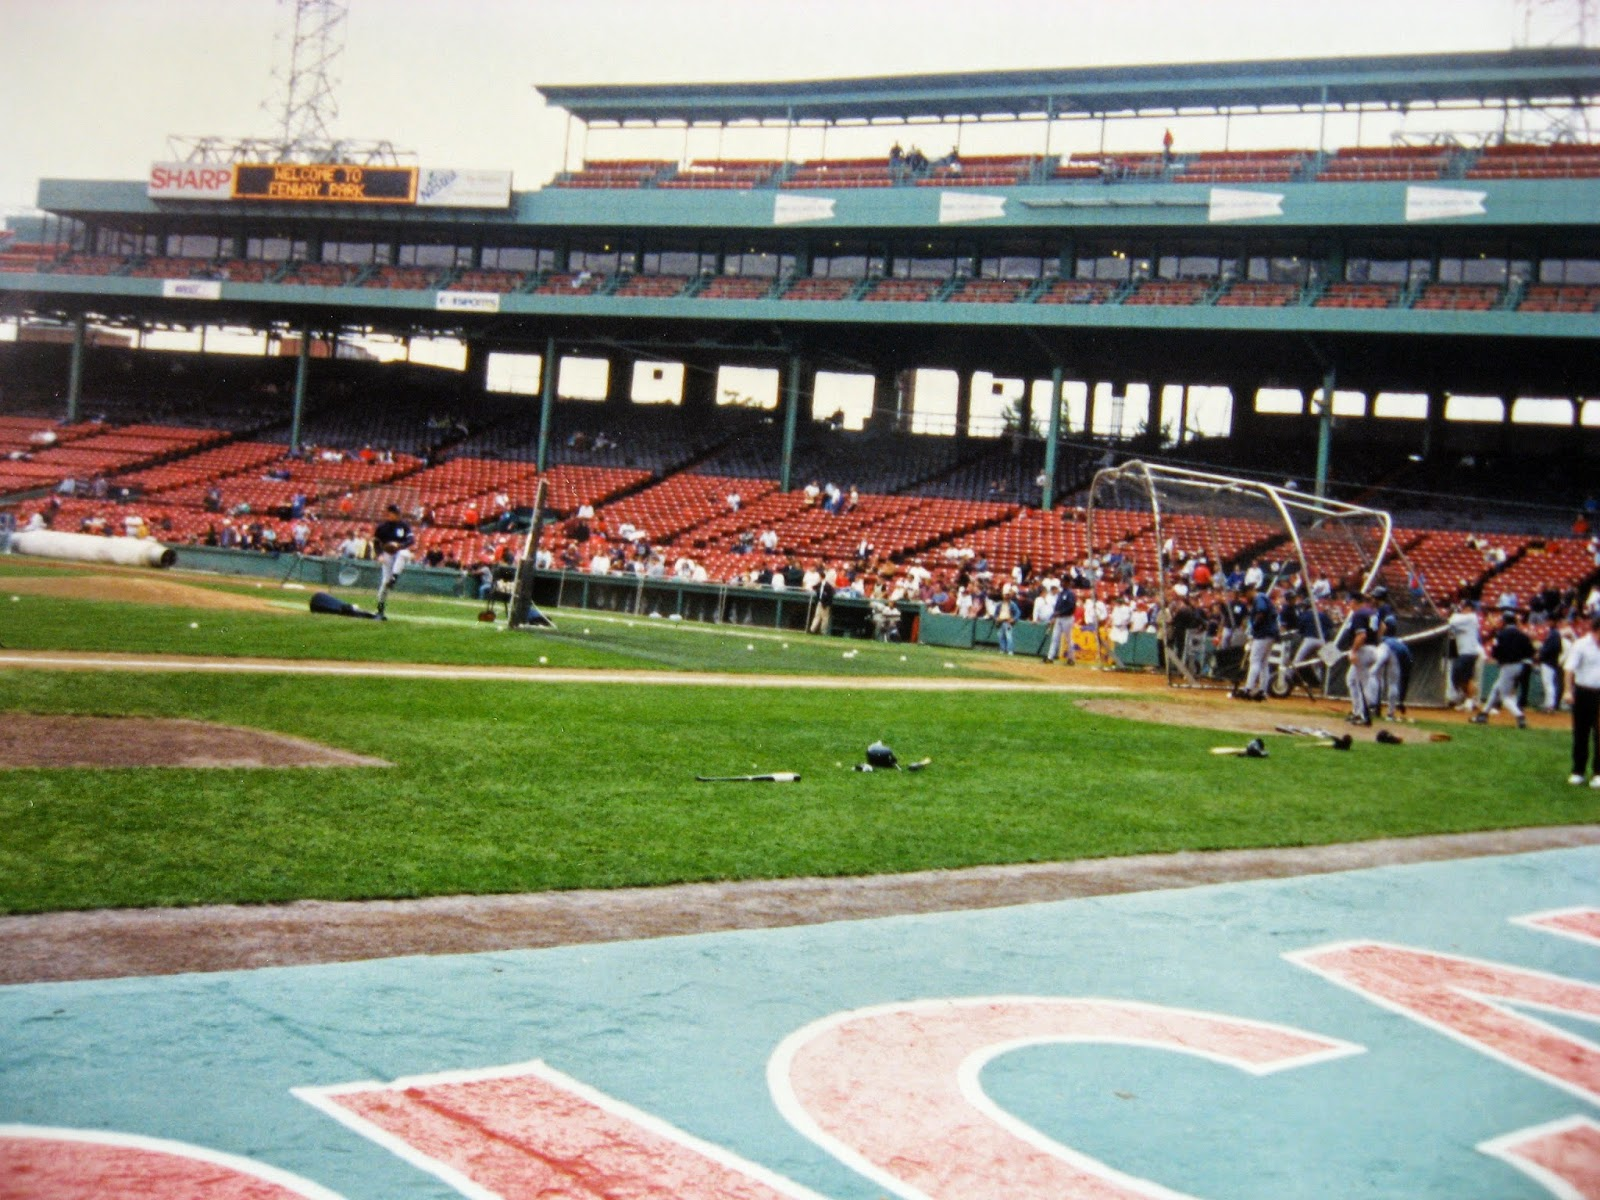 Fenway Park 1996 New York Yankees batting practice